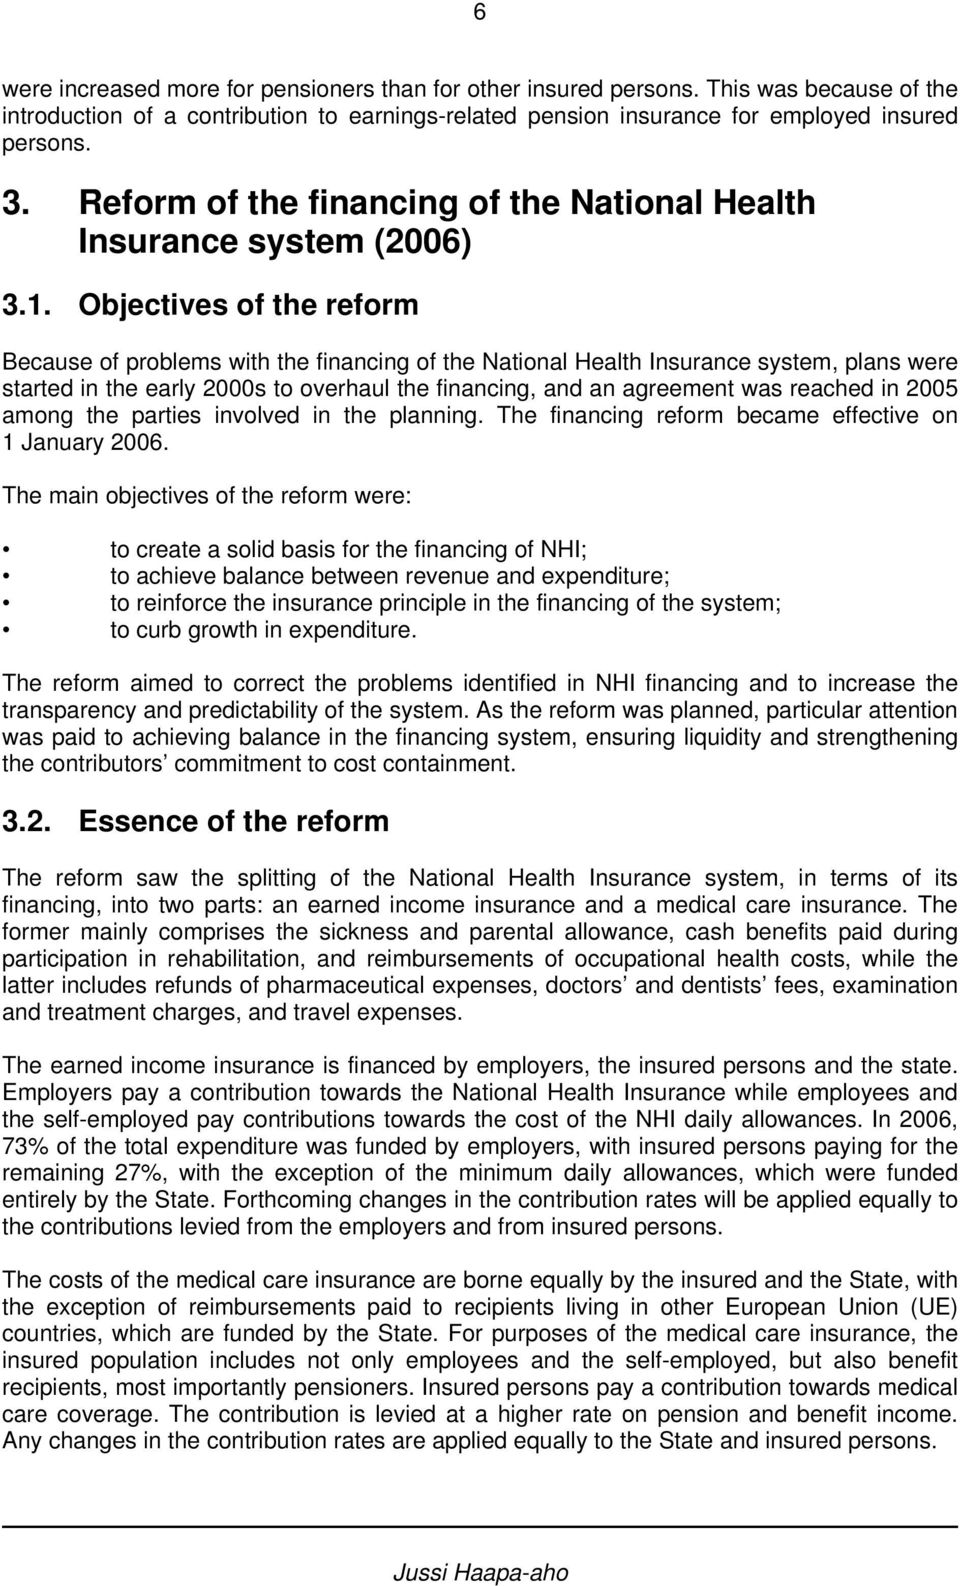 Objectives of the reform Because of problems with the financing of the National Health Insurance system, plans were started in the early 2000s to overhaul the financing, and an agreement was reached